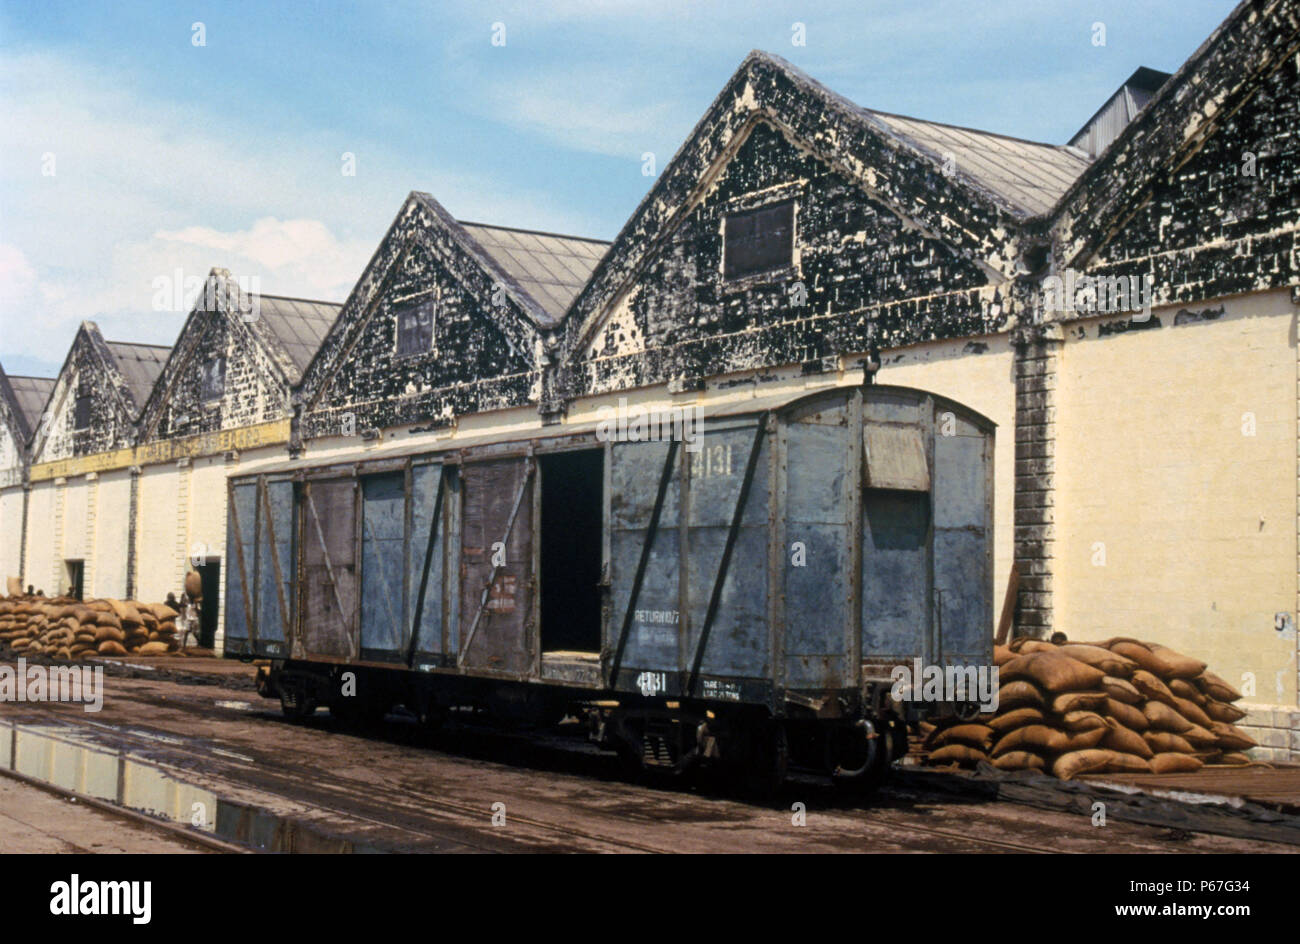 Ghana Cocoa Marketing Wharf at Takoradi on Thursday 6 June 1985. The sacks of beans which come in by rail are visible behind the box car. Thursday 6 J - Stock Image